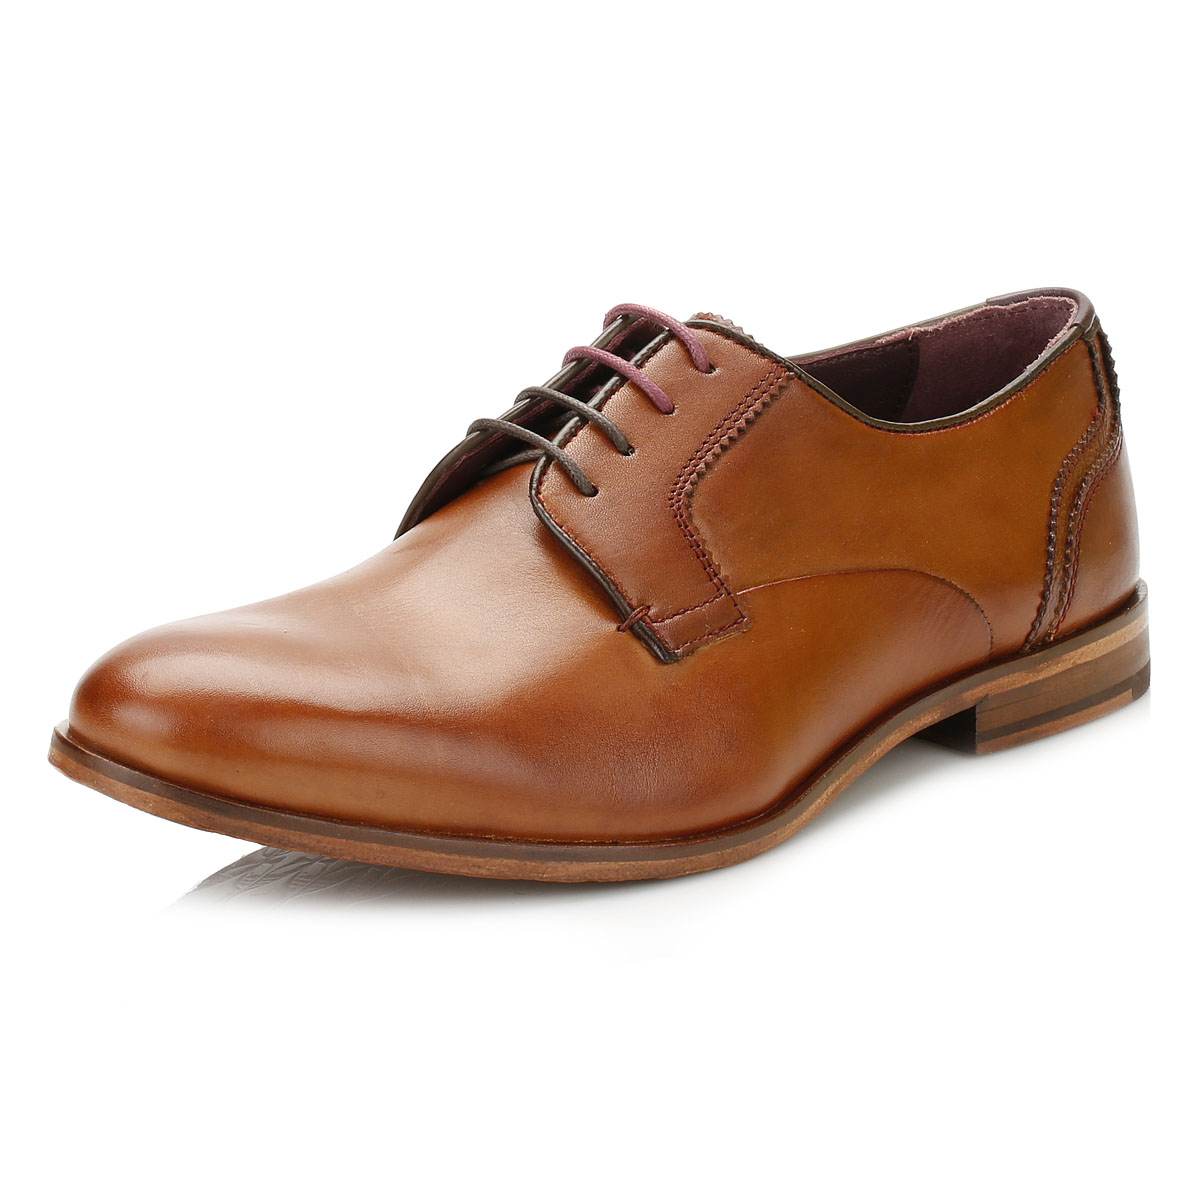 Ted Baker Mens IRONT Derby Shoes, Black or Tan Brown ...